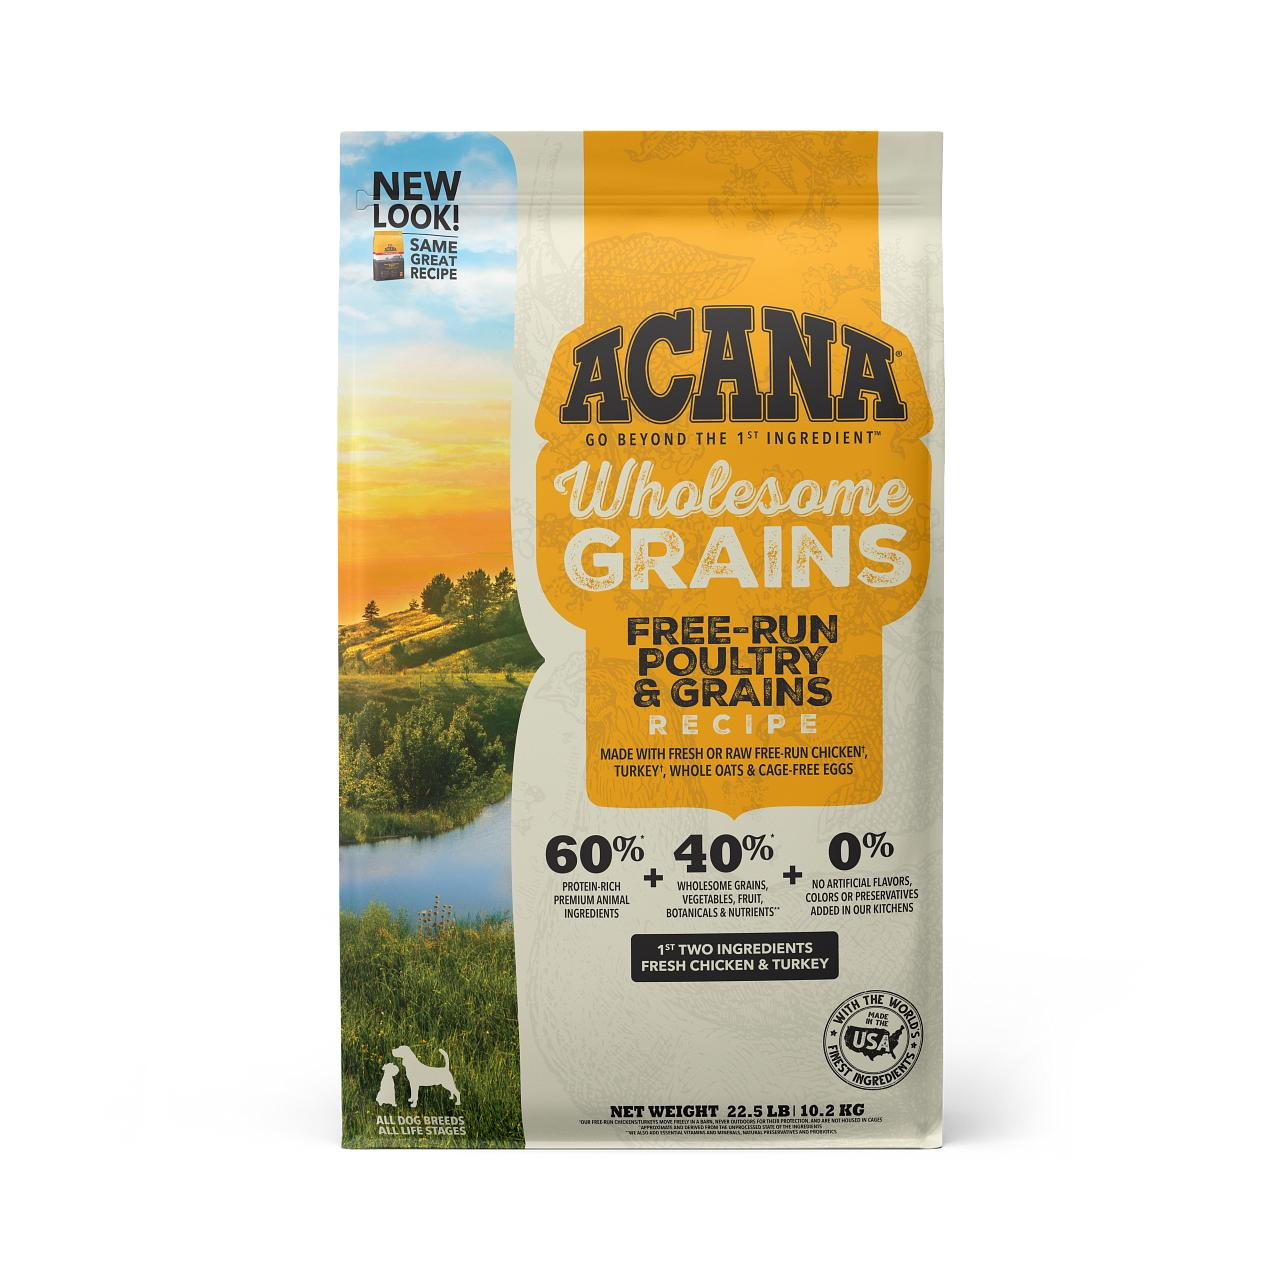 ACANA Wholesome Grains Free-Run Poultry & Grains Dry Dog Food, 22.5-lb